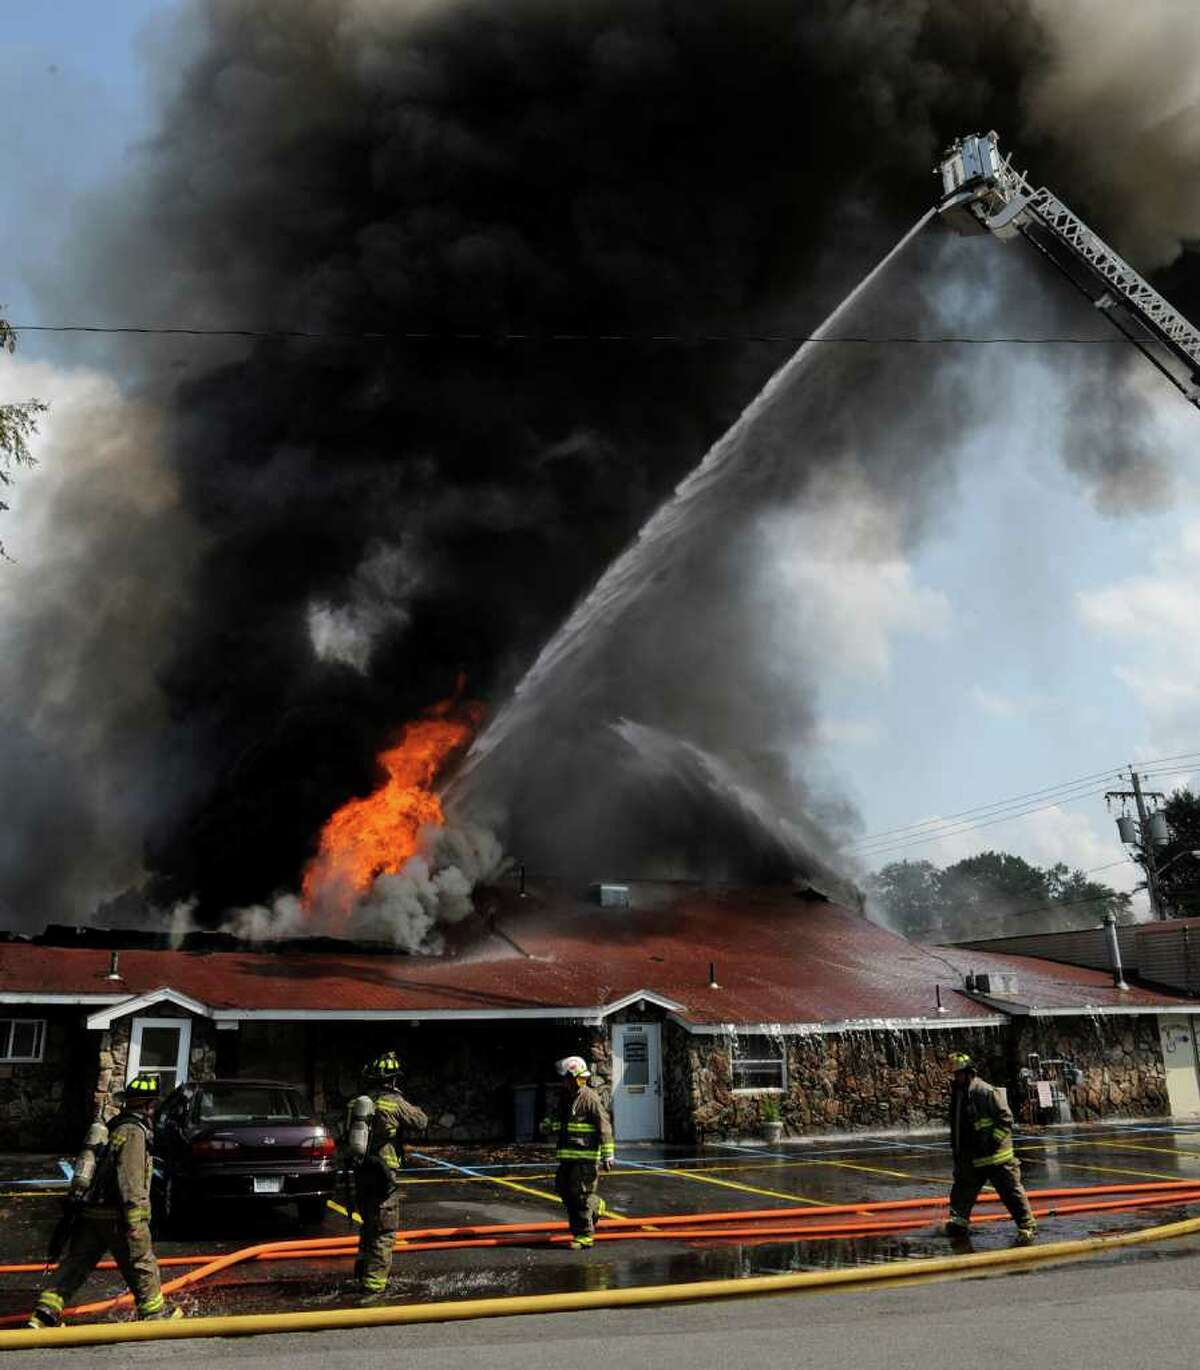 Fire companies from throughout Schenectady County fight a fire on Guilderland Avenue in Rotterdam on Tuesday, Aug. 10, 2010. (Skip Dickstein/Times Union)